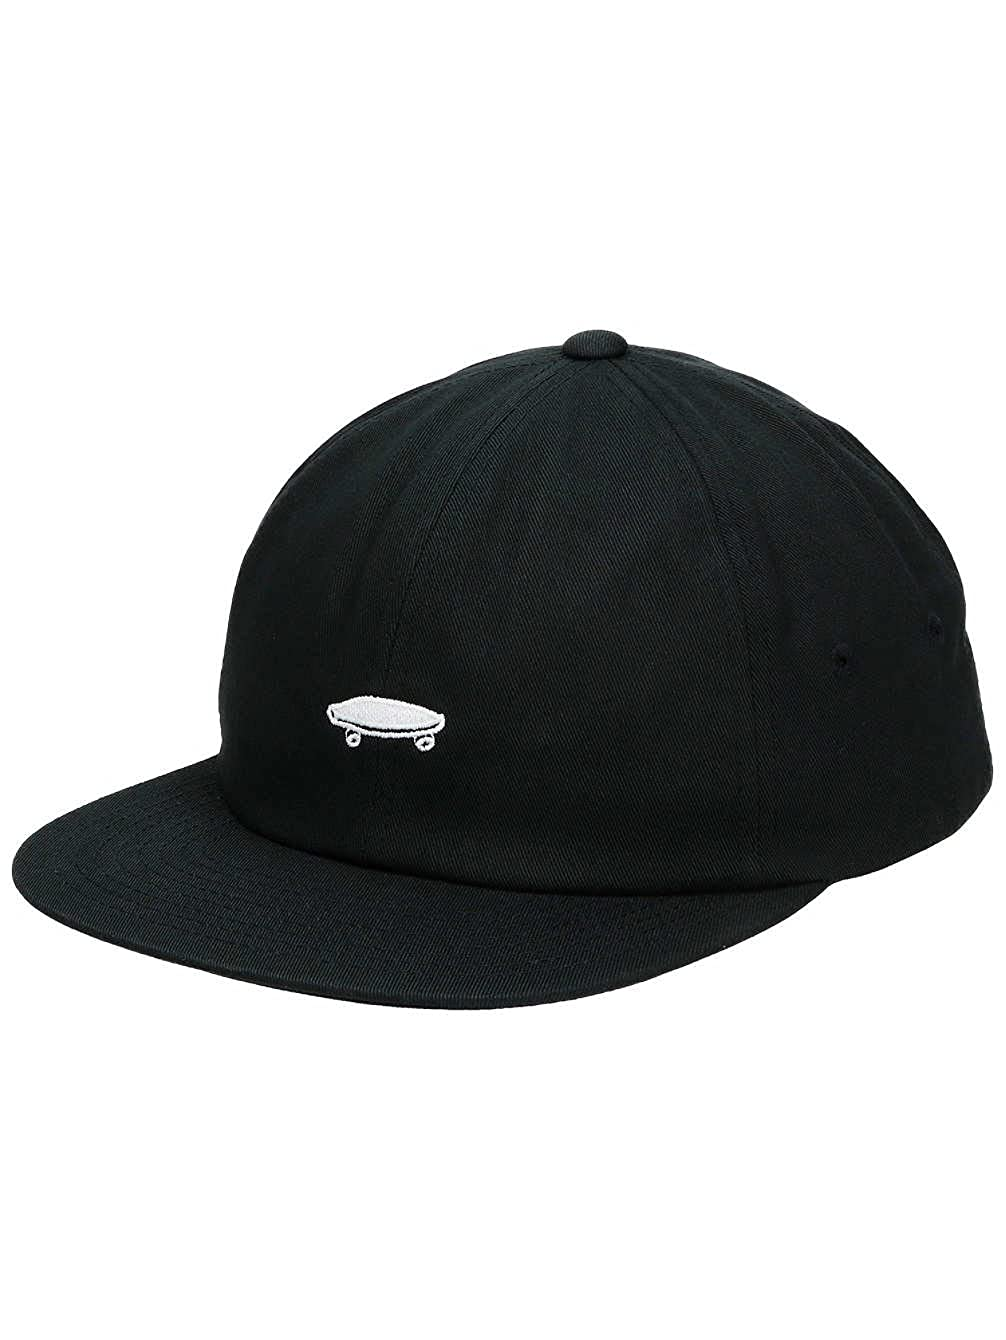 ae1ee272de2 Cap Men Vans X Thrasher Jockey Cap  Amazon.co.uk  Clothing